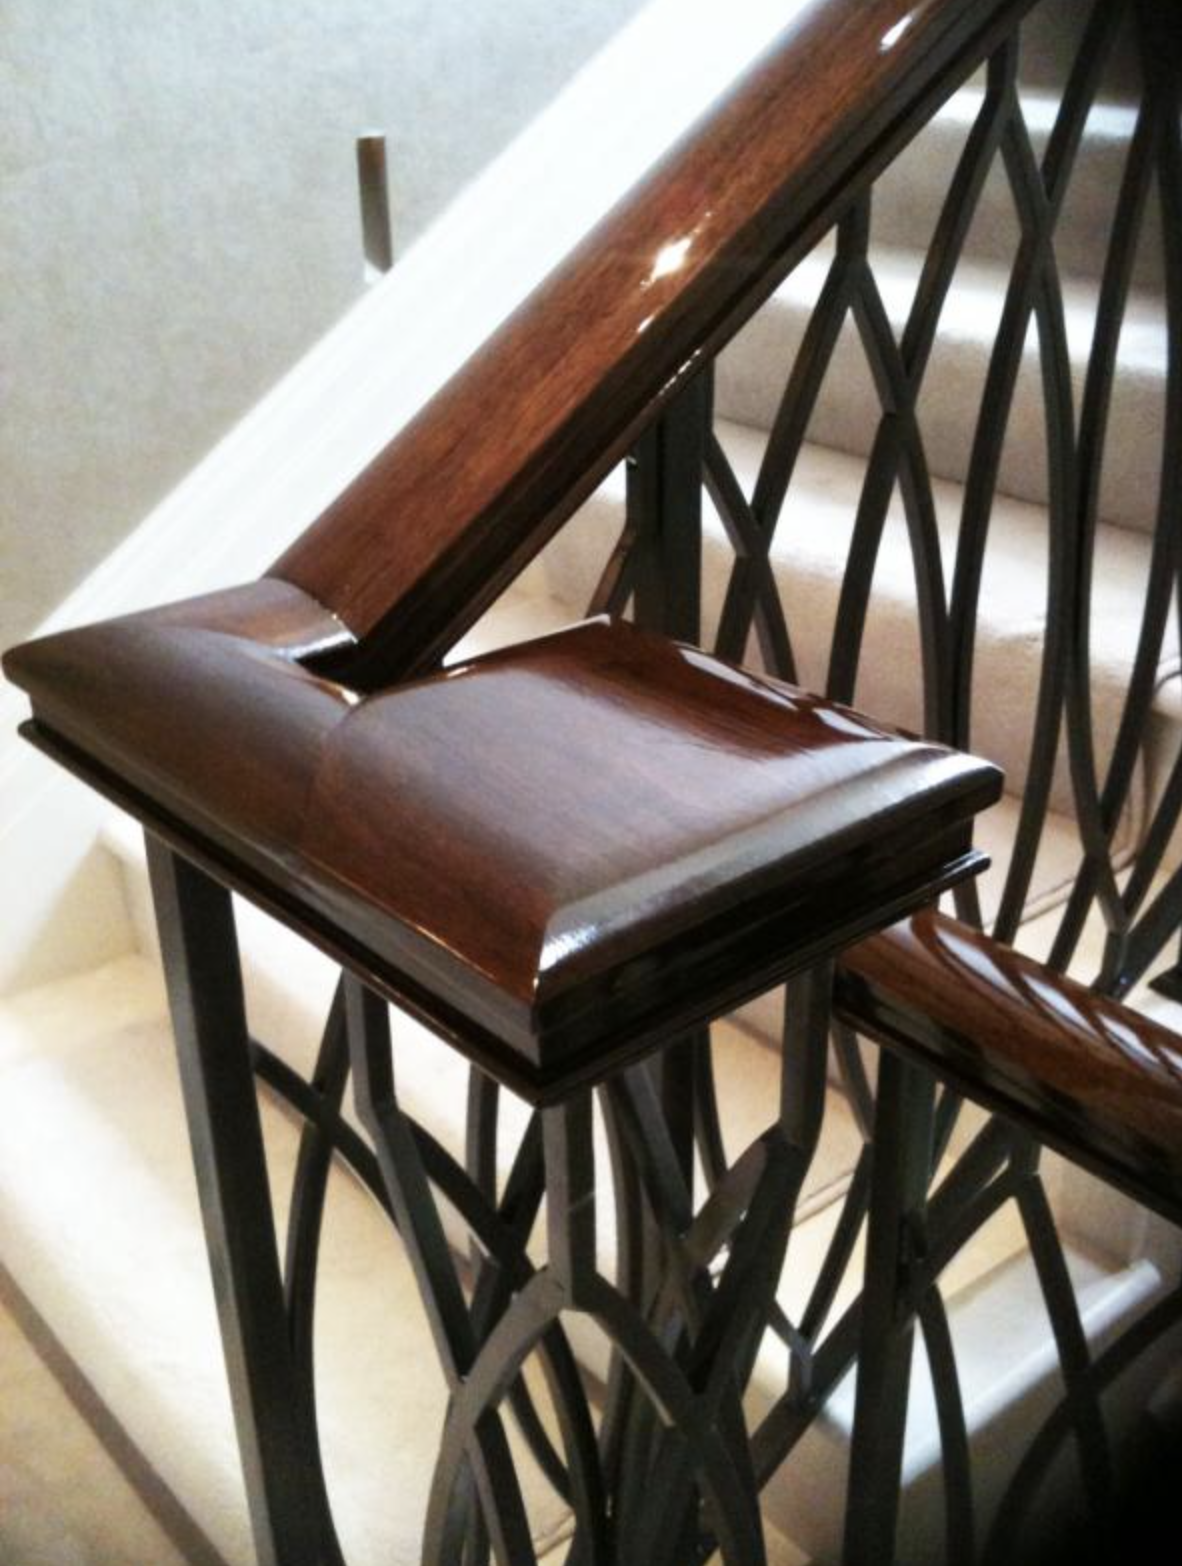 Hand rails in period houses need a French polish periodically